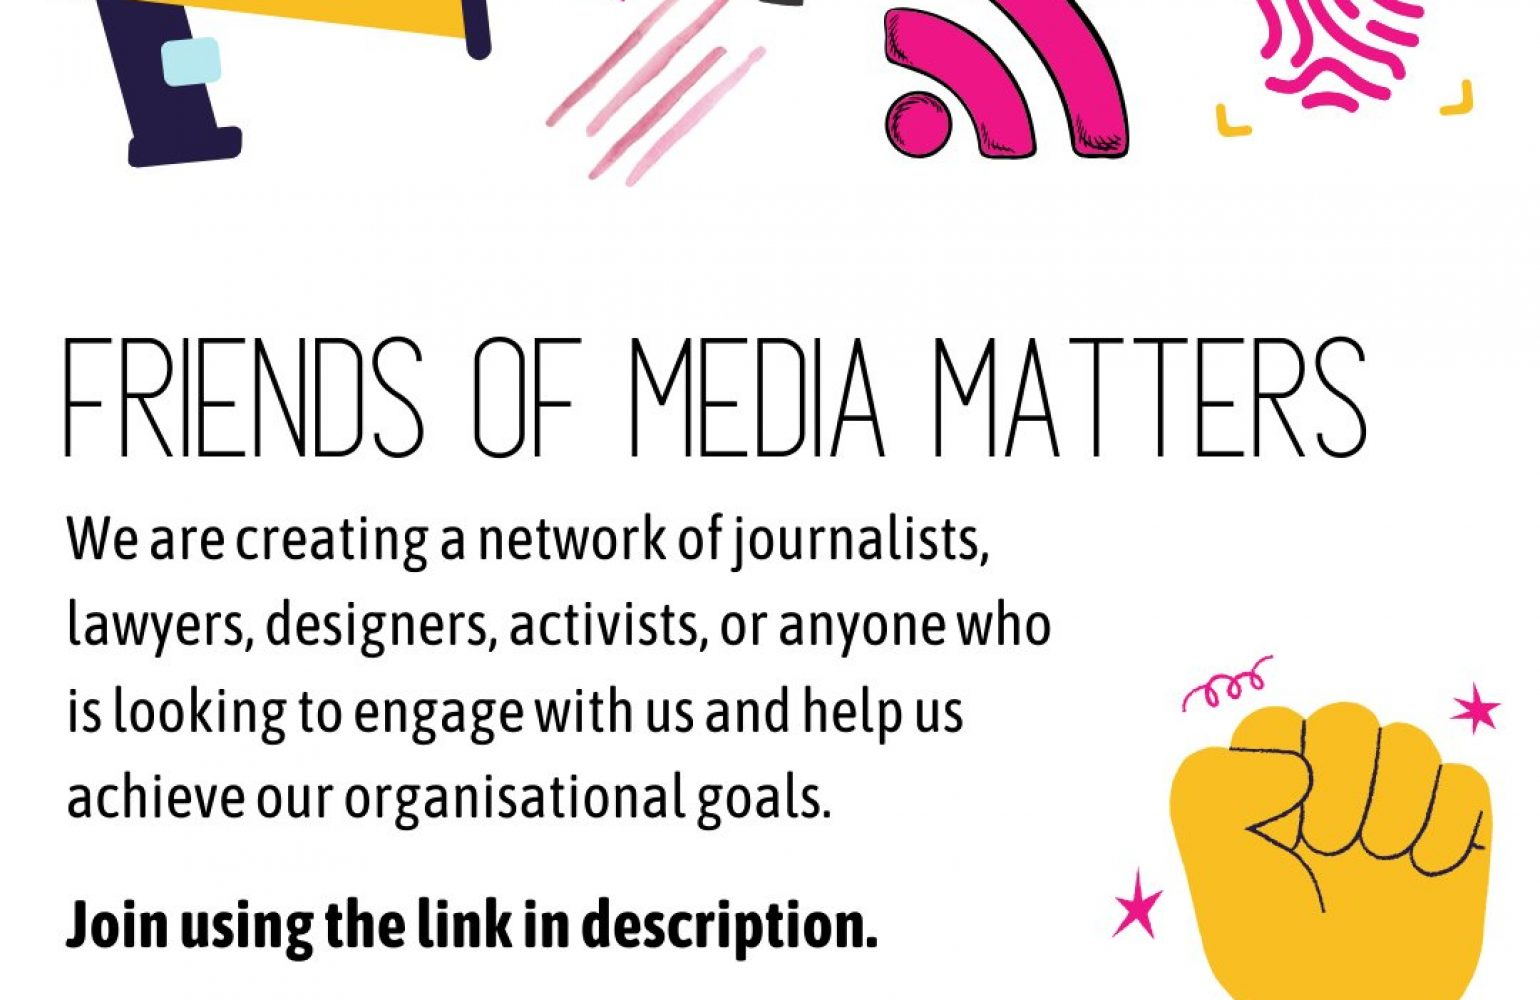 Media Matters for Democracy announces the creation of 'Friends of Media Matters', a network of journalists, lawyers, and designers interested to engage on MMFD's interventions